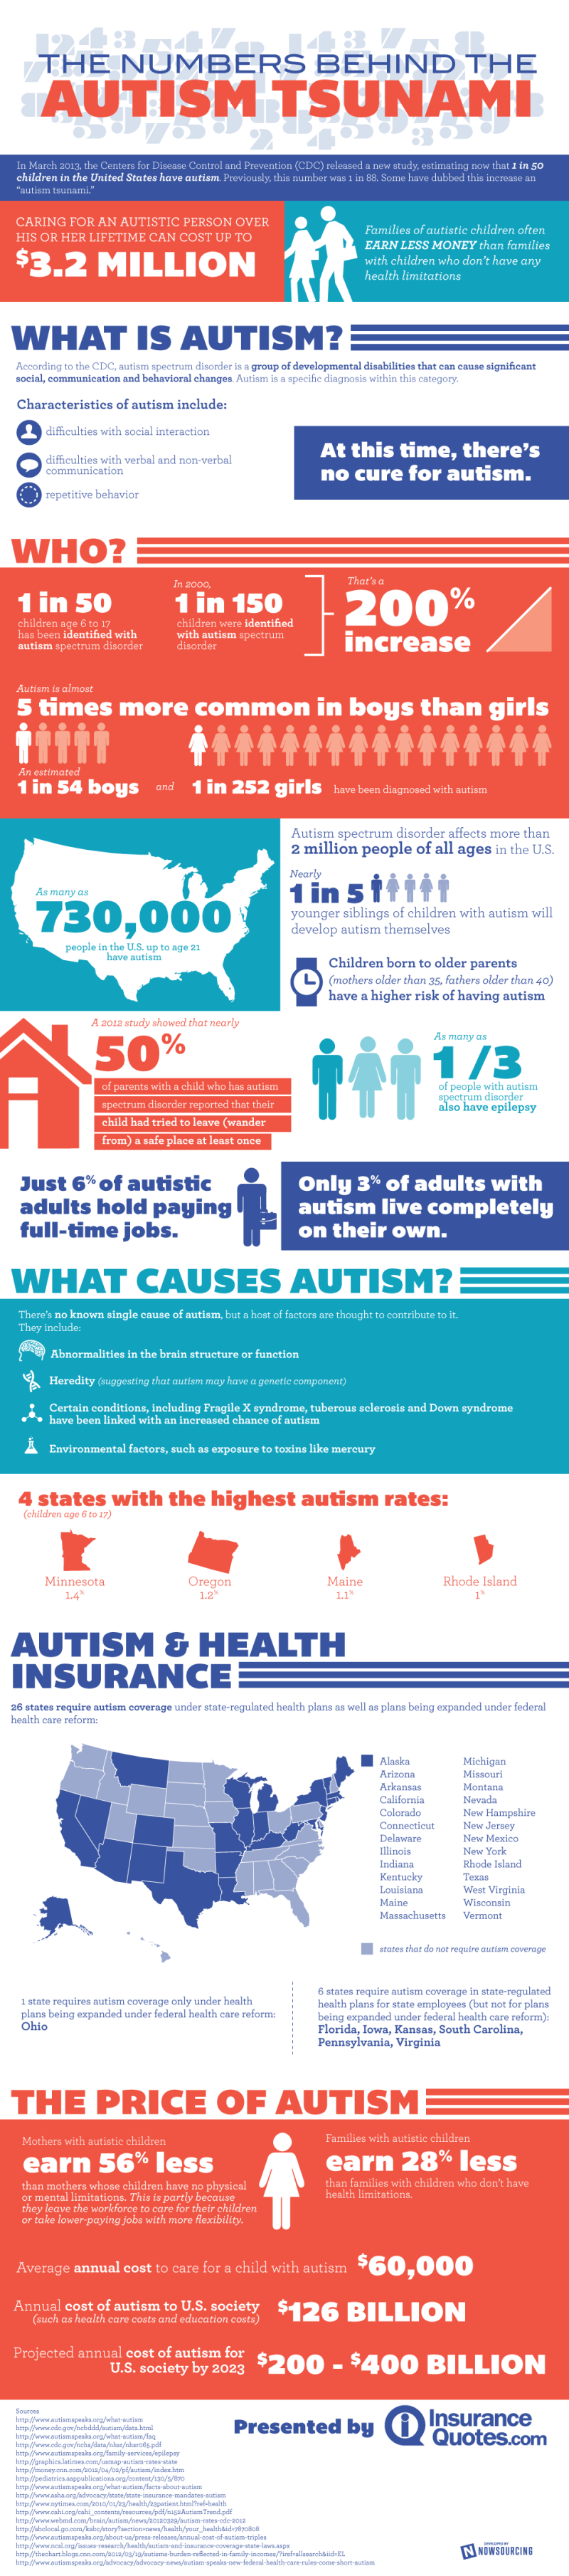 Autism Facts and Statistics